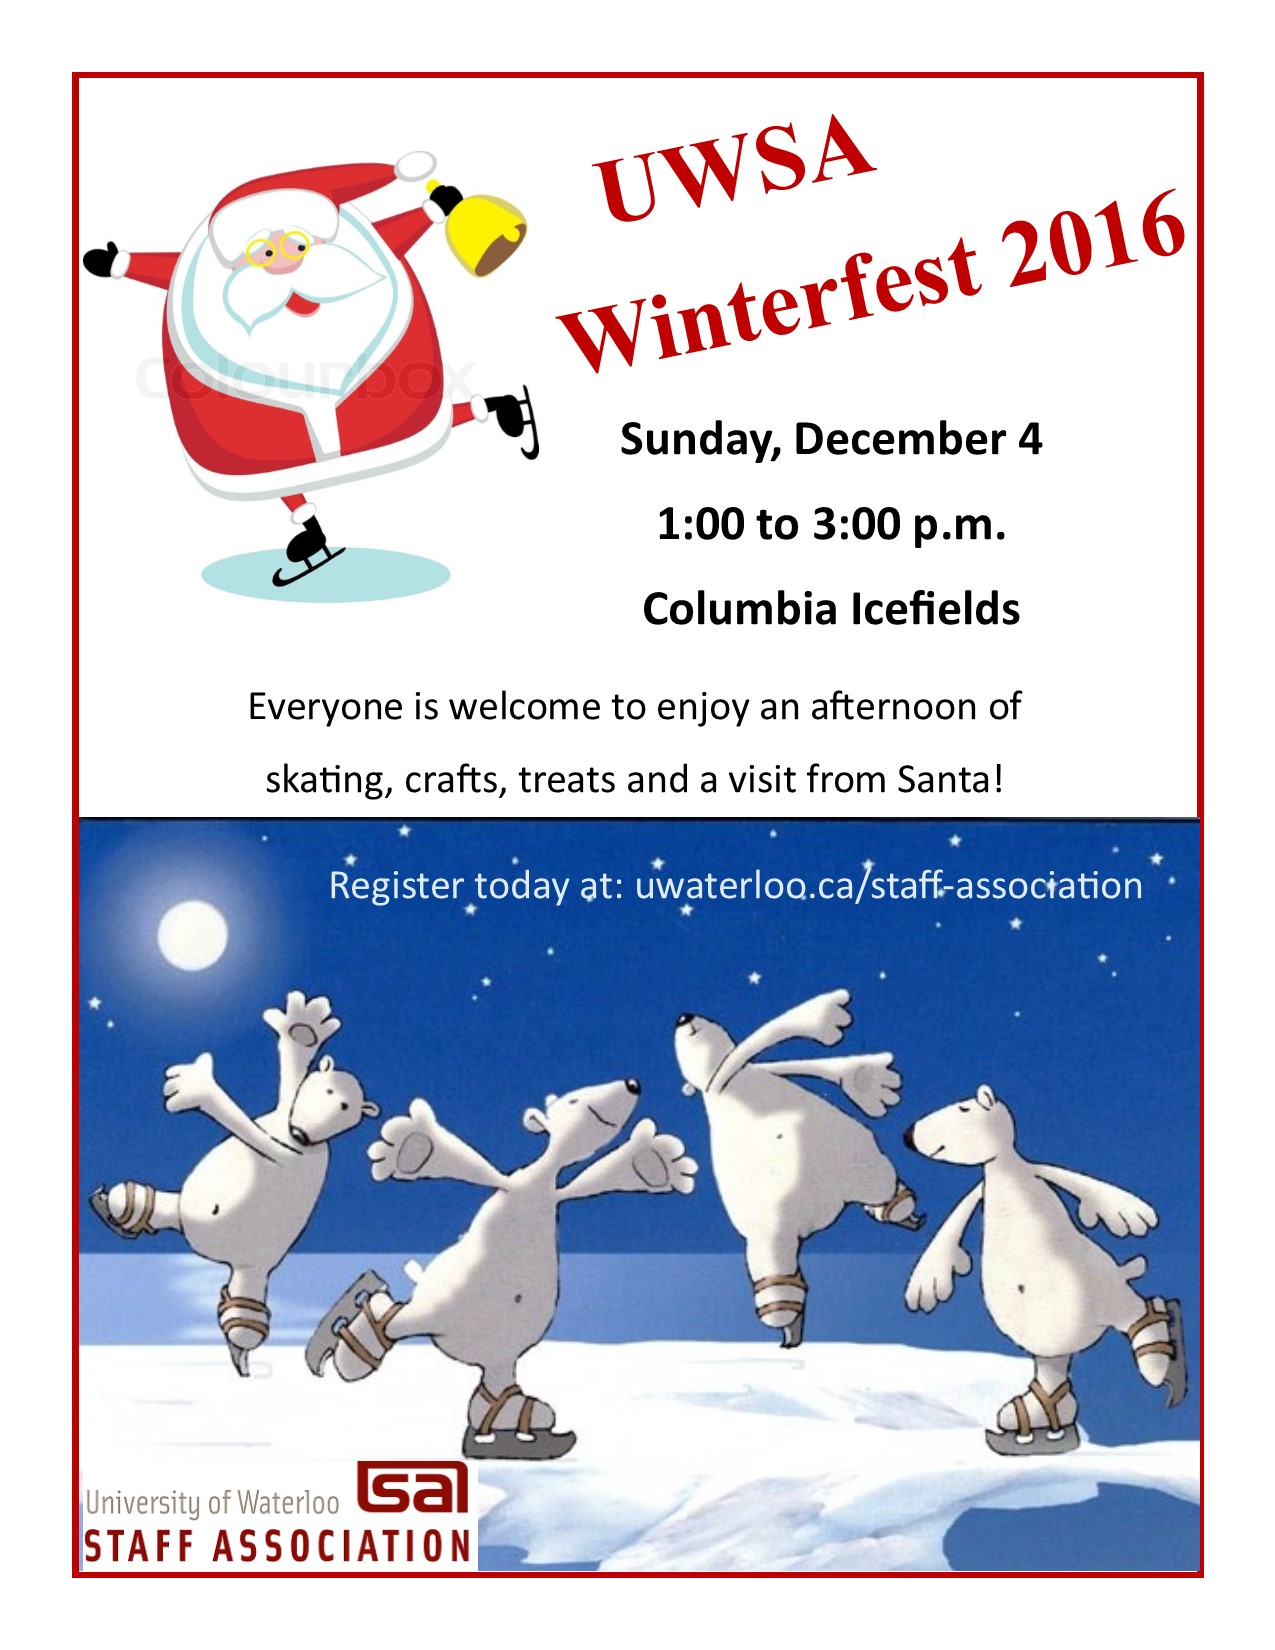 poster for winterfest 2016